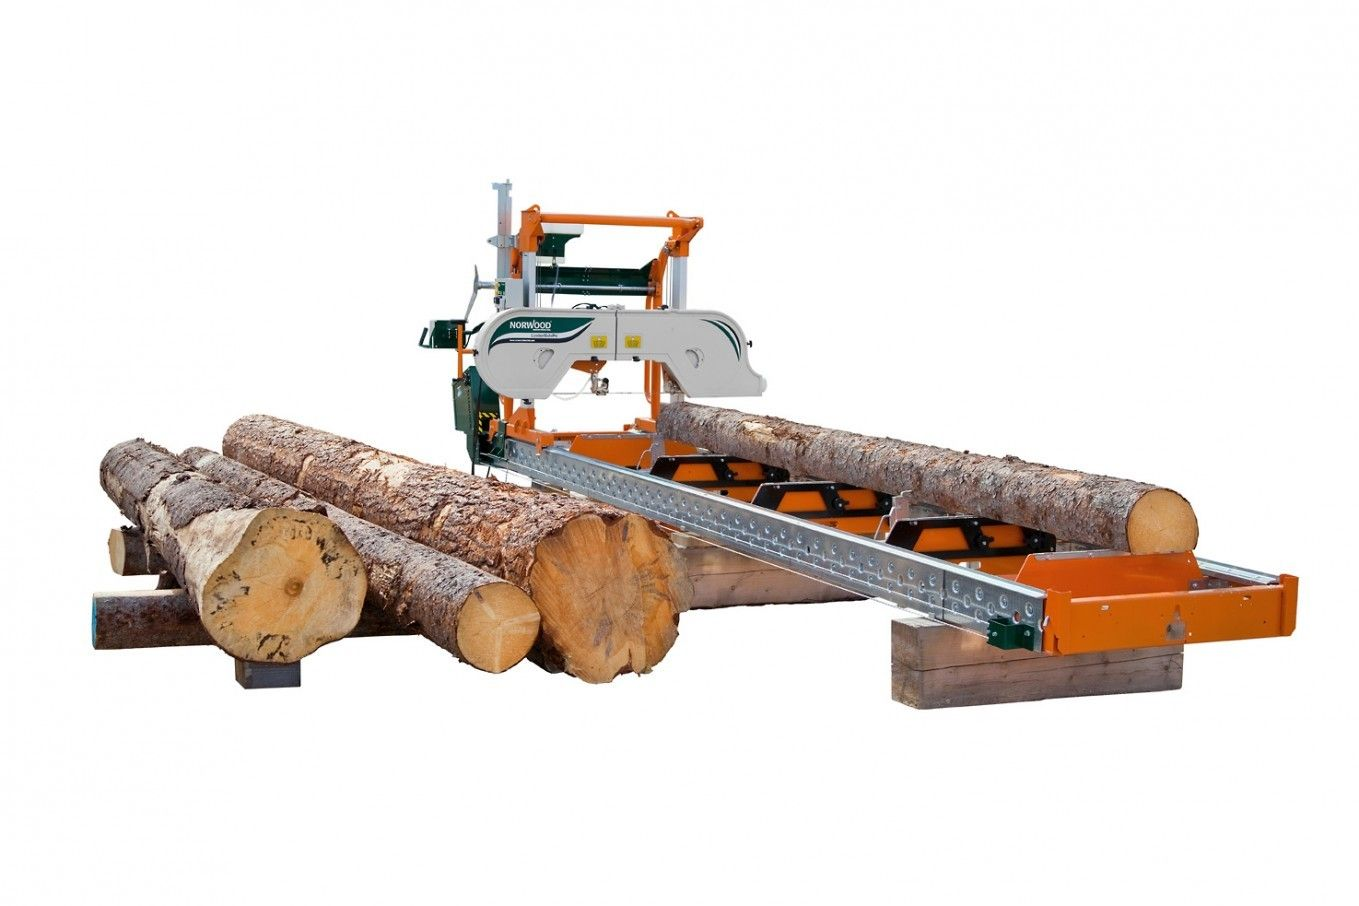 Aserrador de banda lumberpro hd36 with 23 hp gas motor